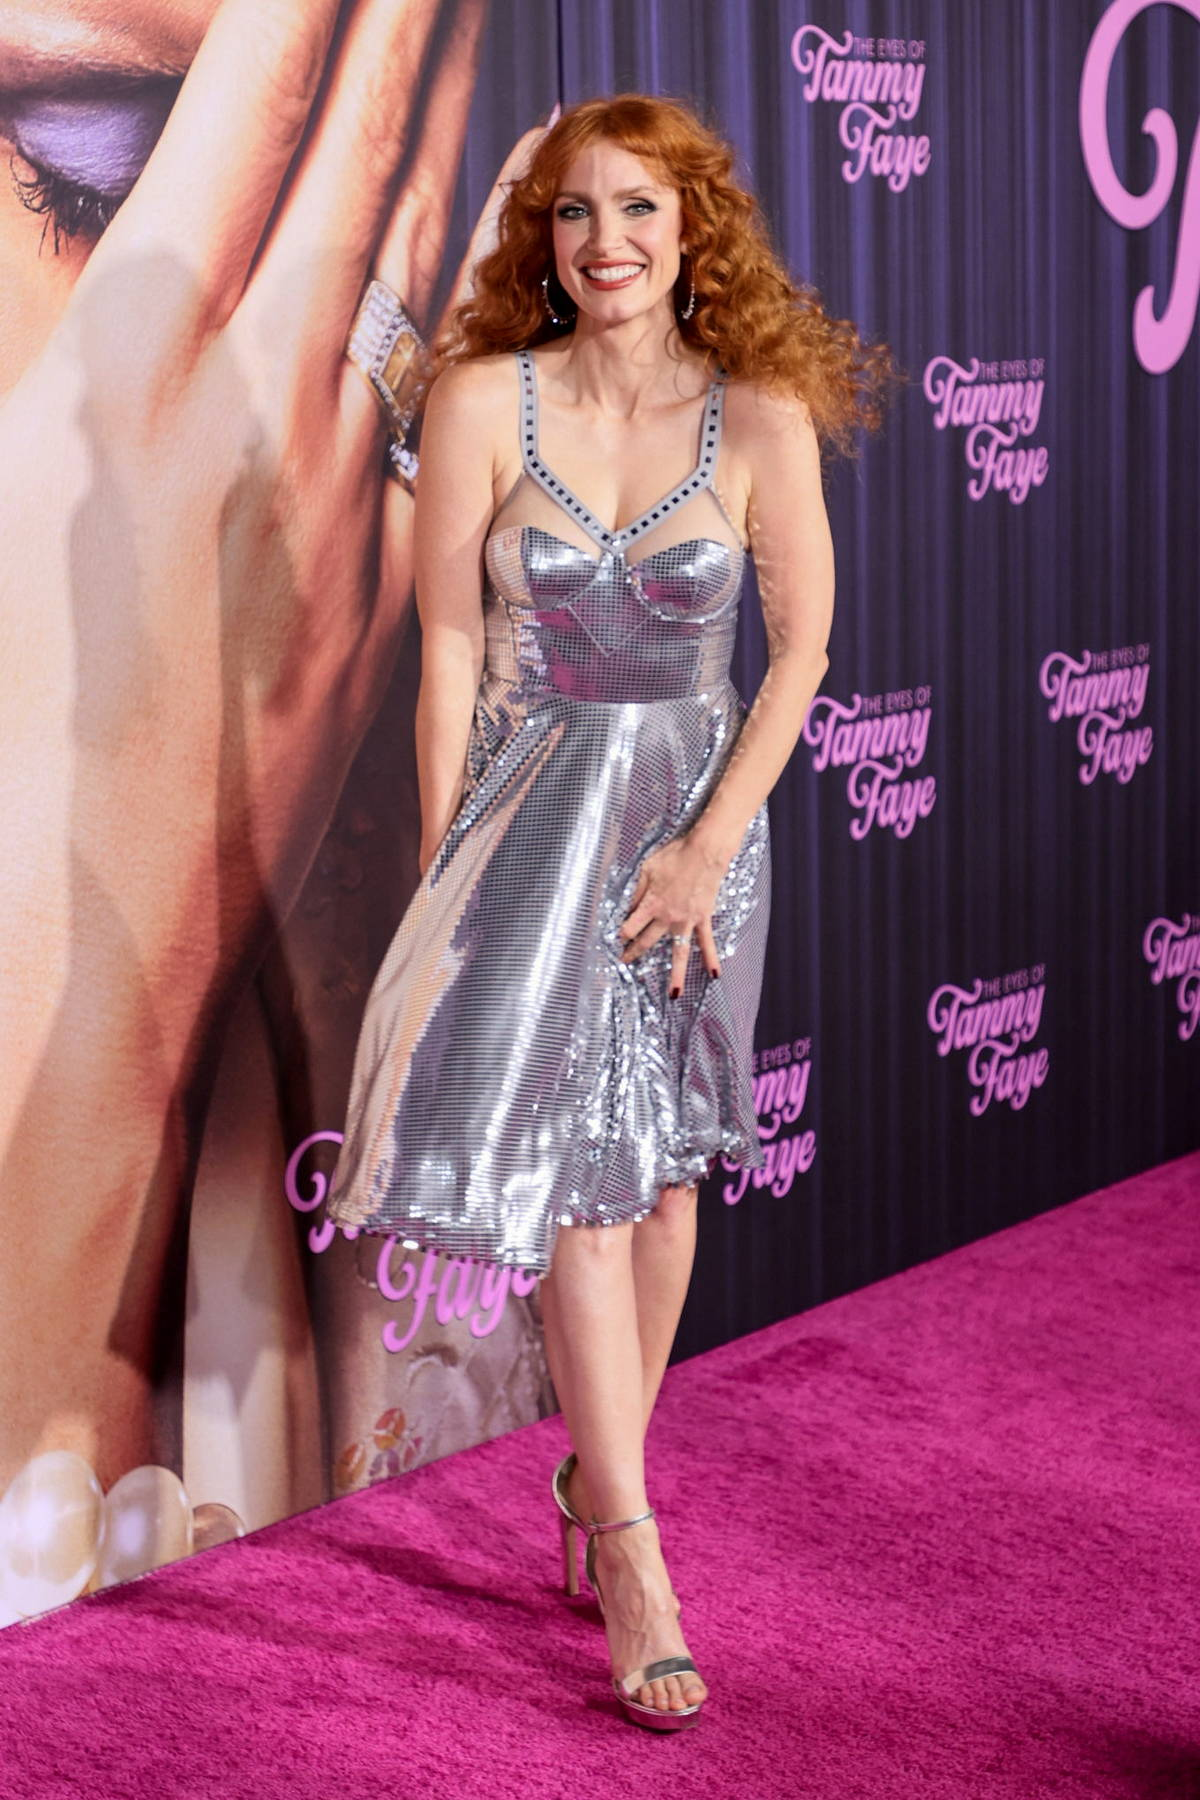 Jessica Chastain attends the Premiere of 'The Eyes Of Tammy Faye' at SVA Theater in New York City